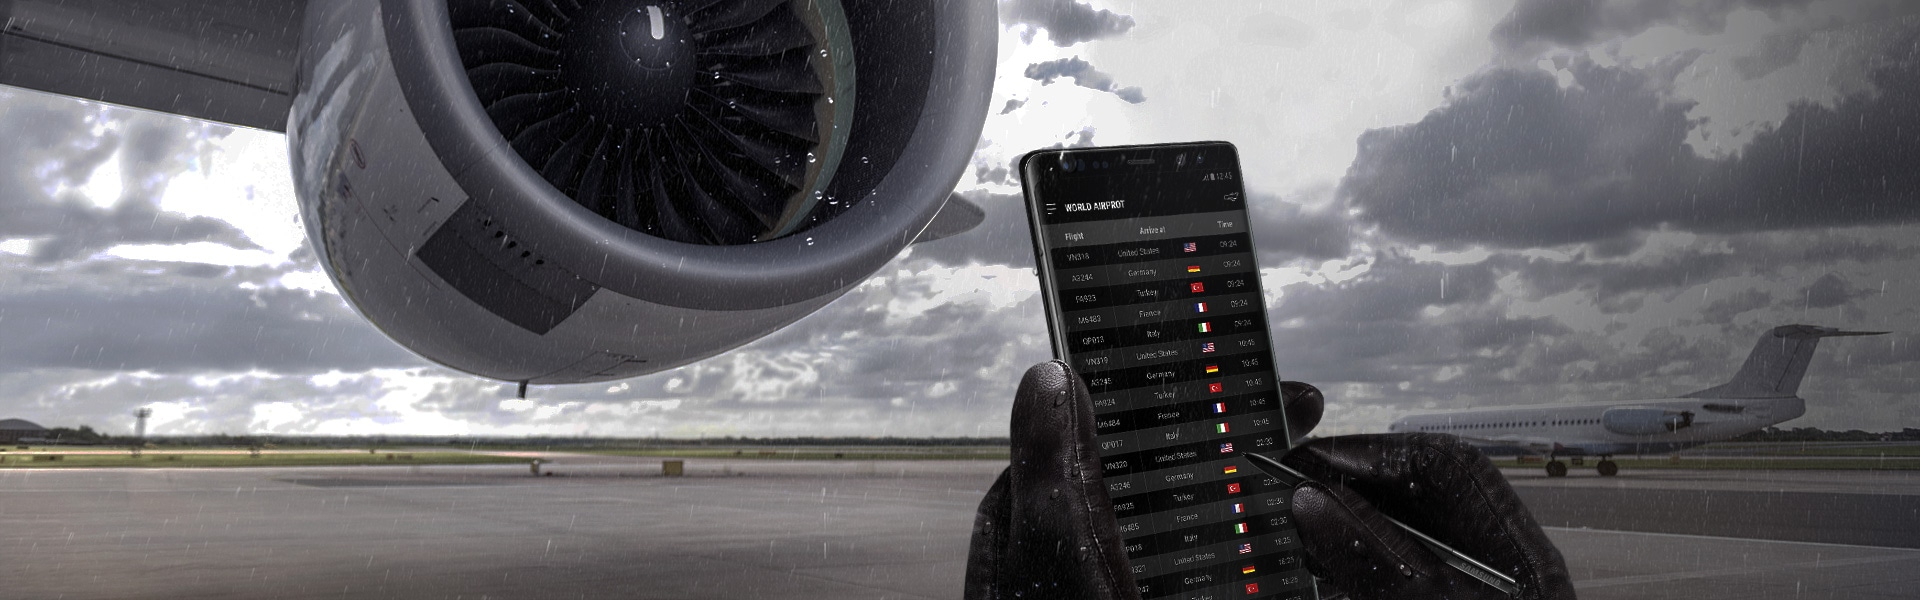 Image of a person using the Galaxy Note8 in the rain in front of an airplane engine